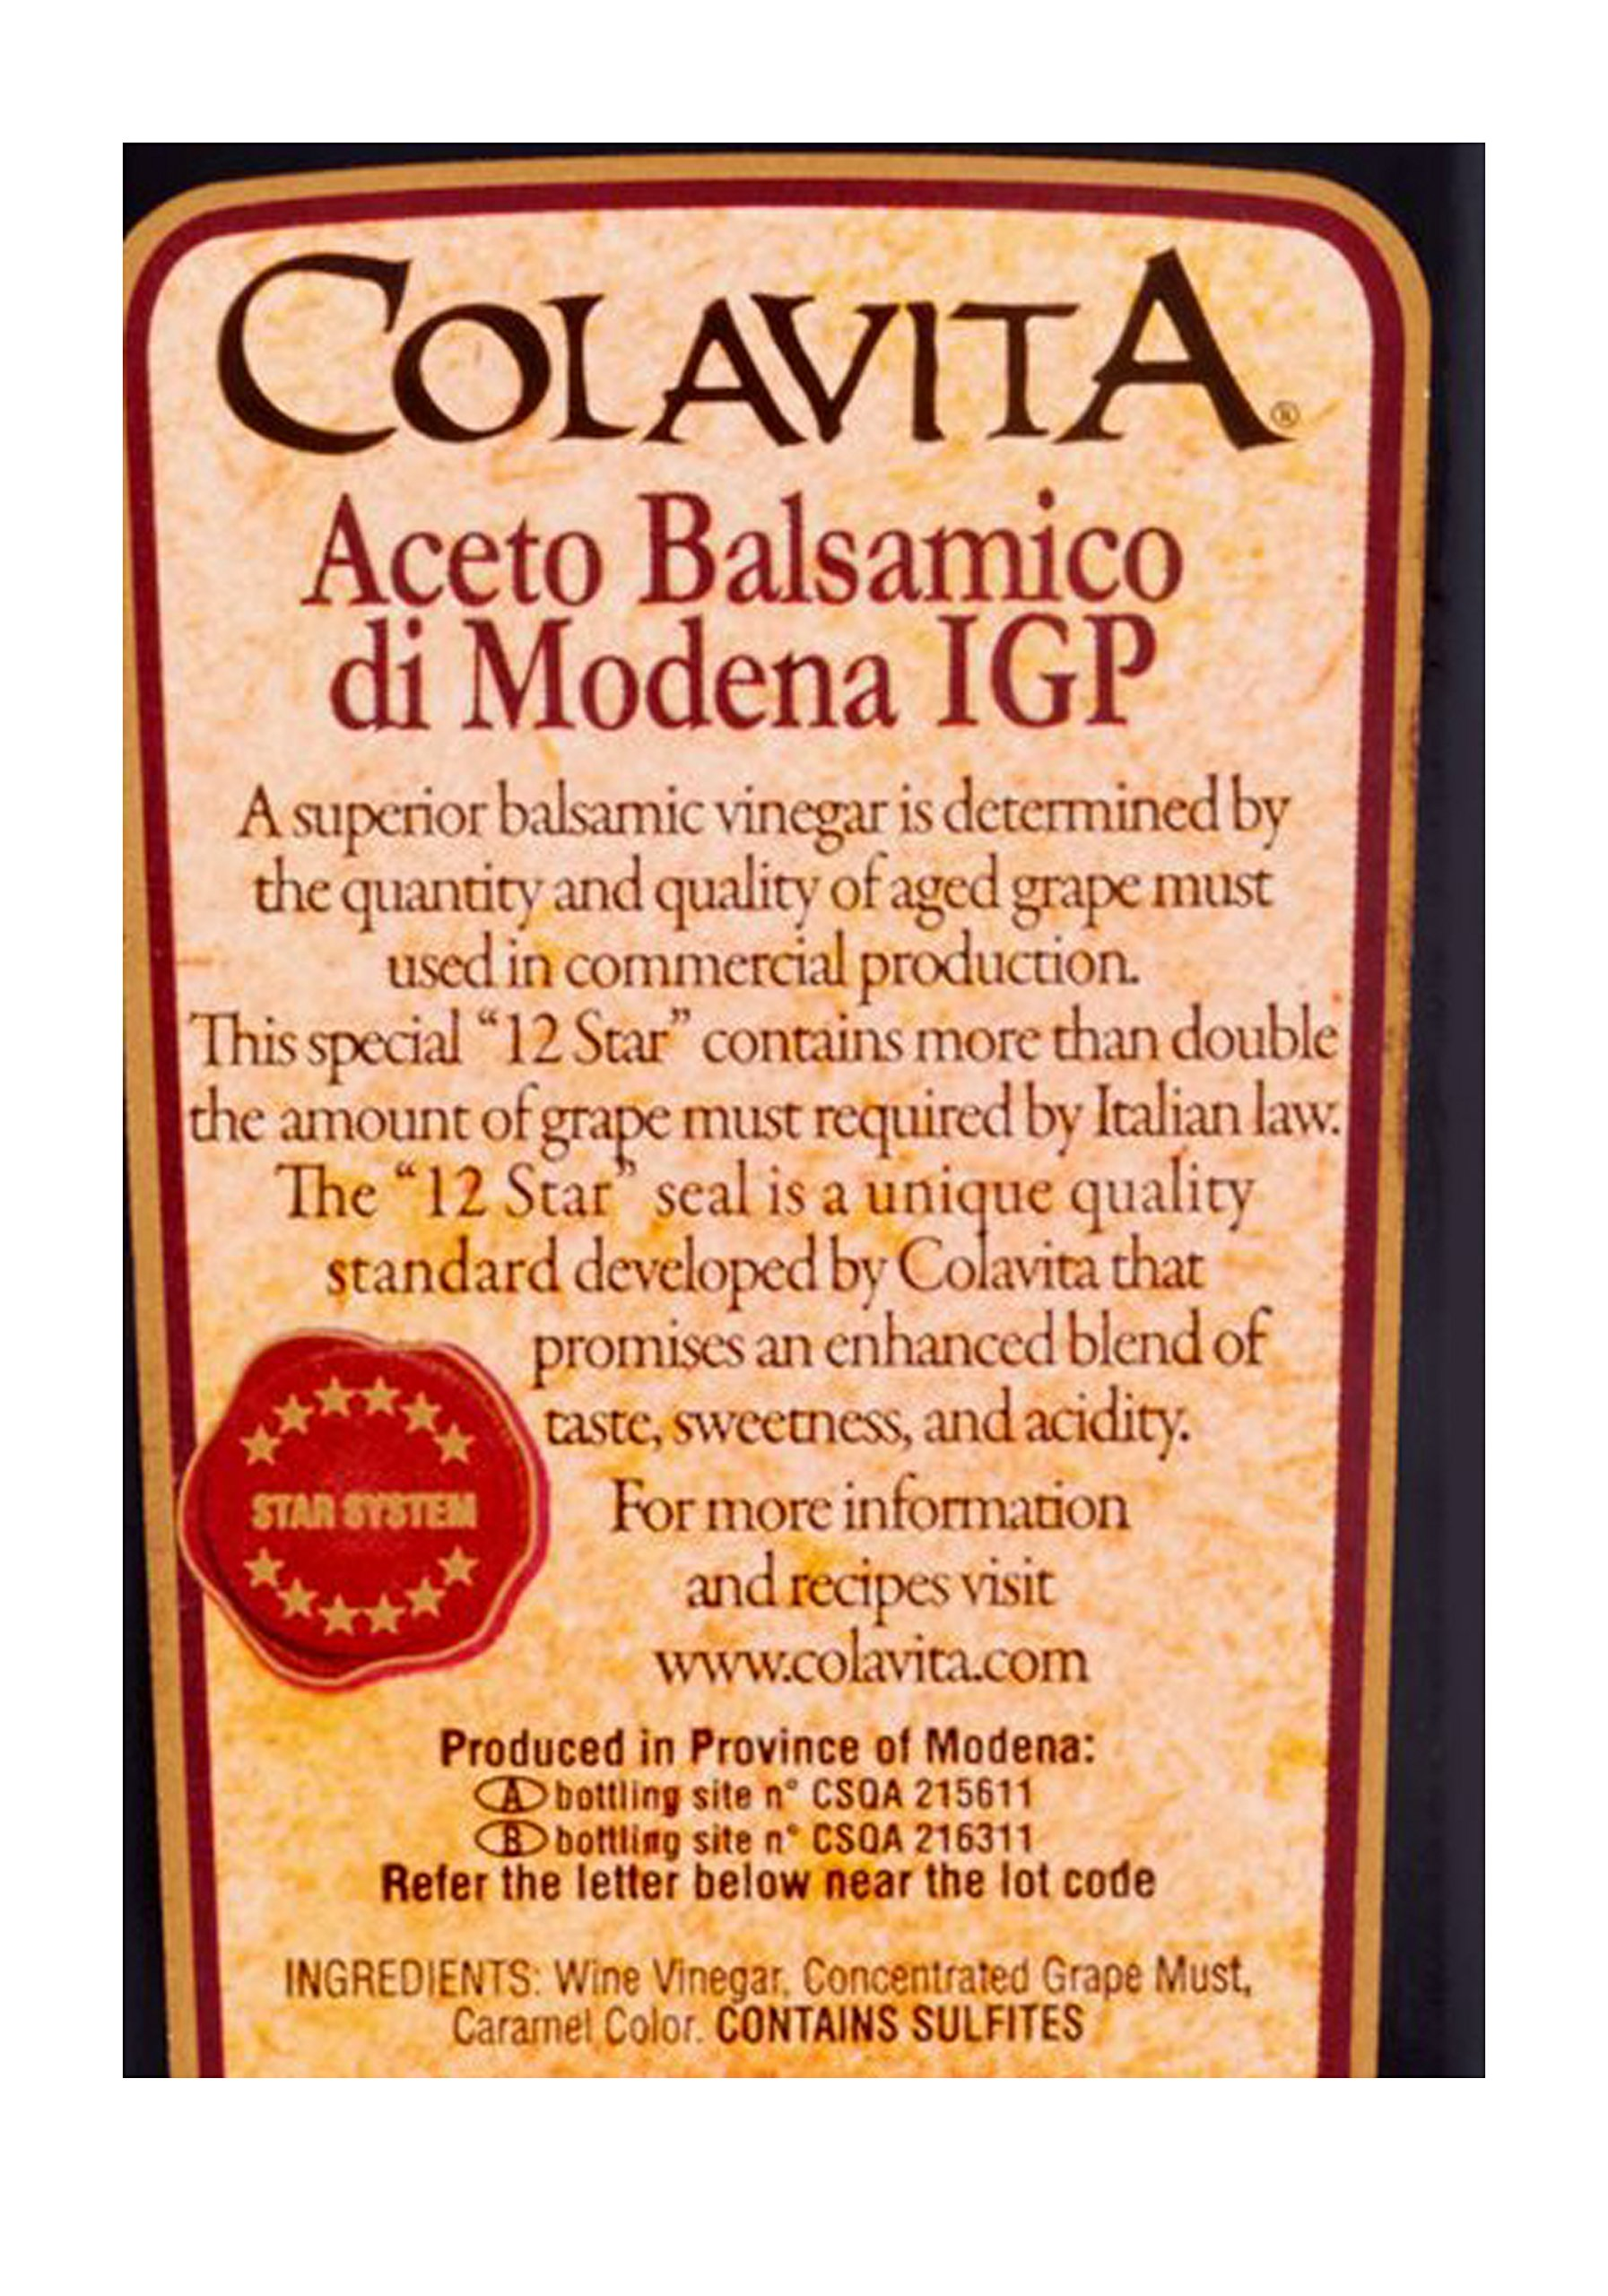 "Colavita Balsamic Vinegar of Modena, 34 Ounce (Pack of 2) 4 Contains Two Bottles of Colavita Balsamic Vinegar of Modena, 34 Ounce Each This special ""12 Star"" balsamic vinegar contains more than double the amount of grape must required by Italian Law. Product of Modena, Italy"